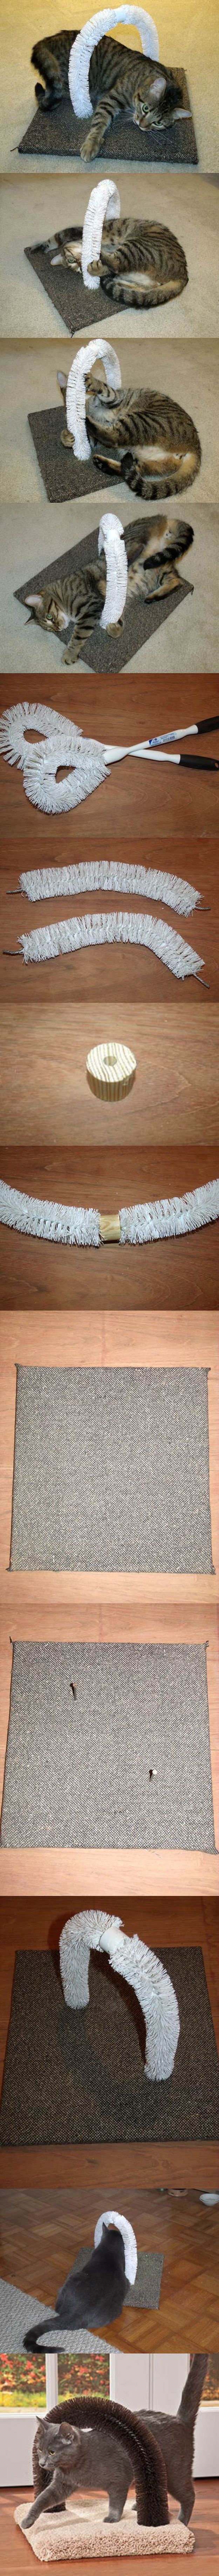 Easy DIY Cat Scratcher | Self-Petting Station for Cats by DIY Ready http://diyready.com/best-diy-pet-projects-to-keep-your-furry-friends-happy/